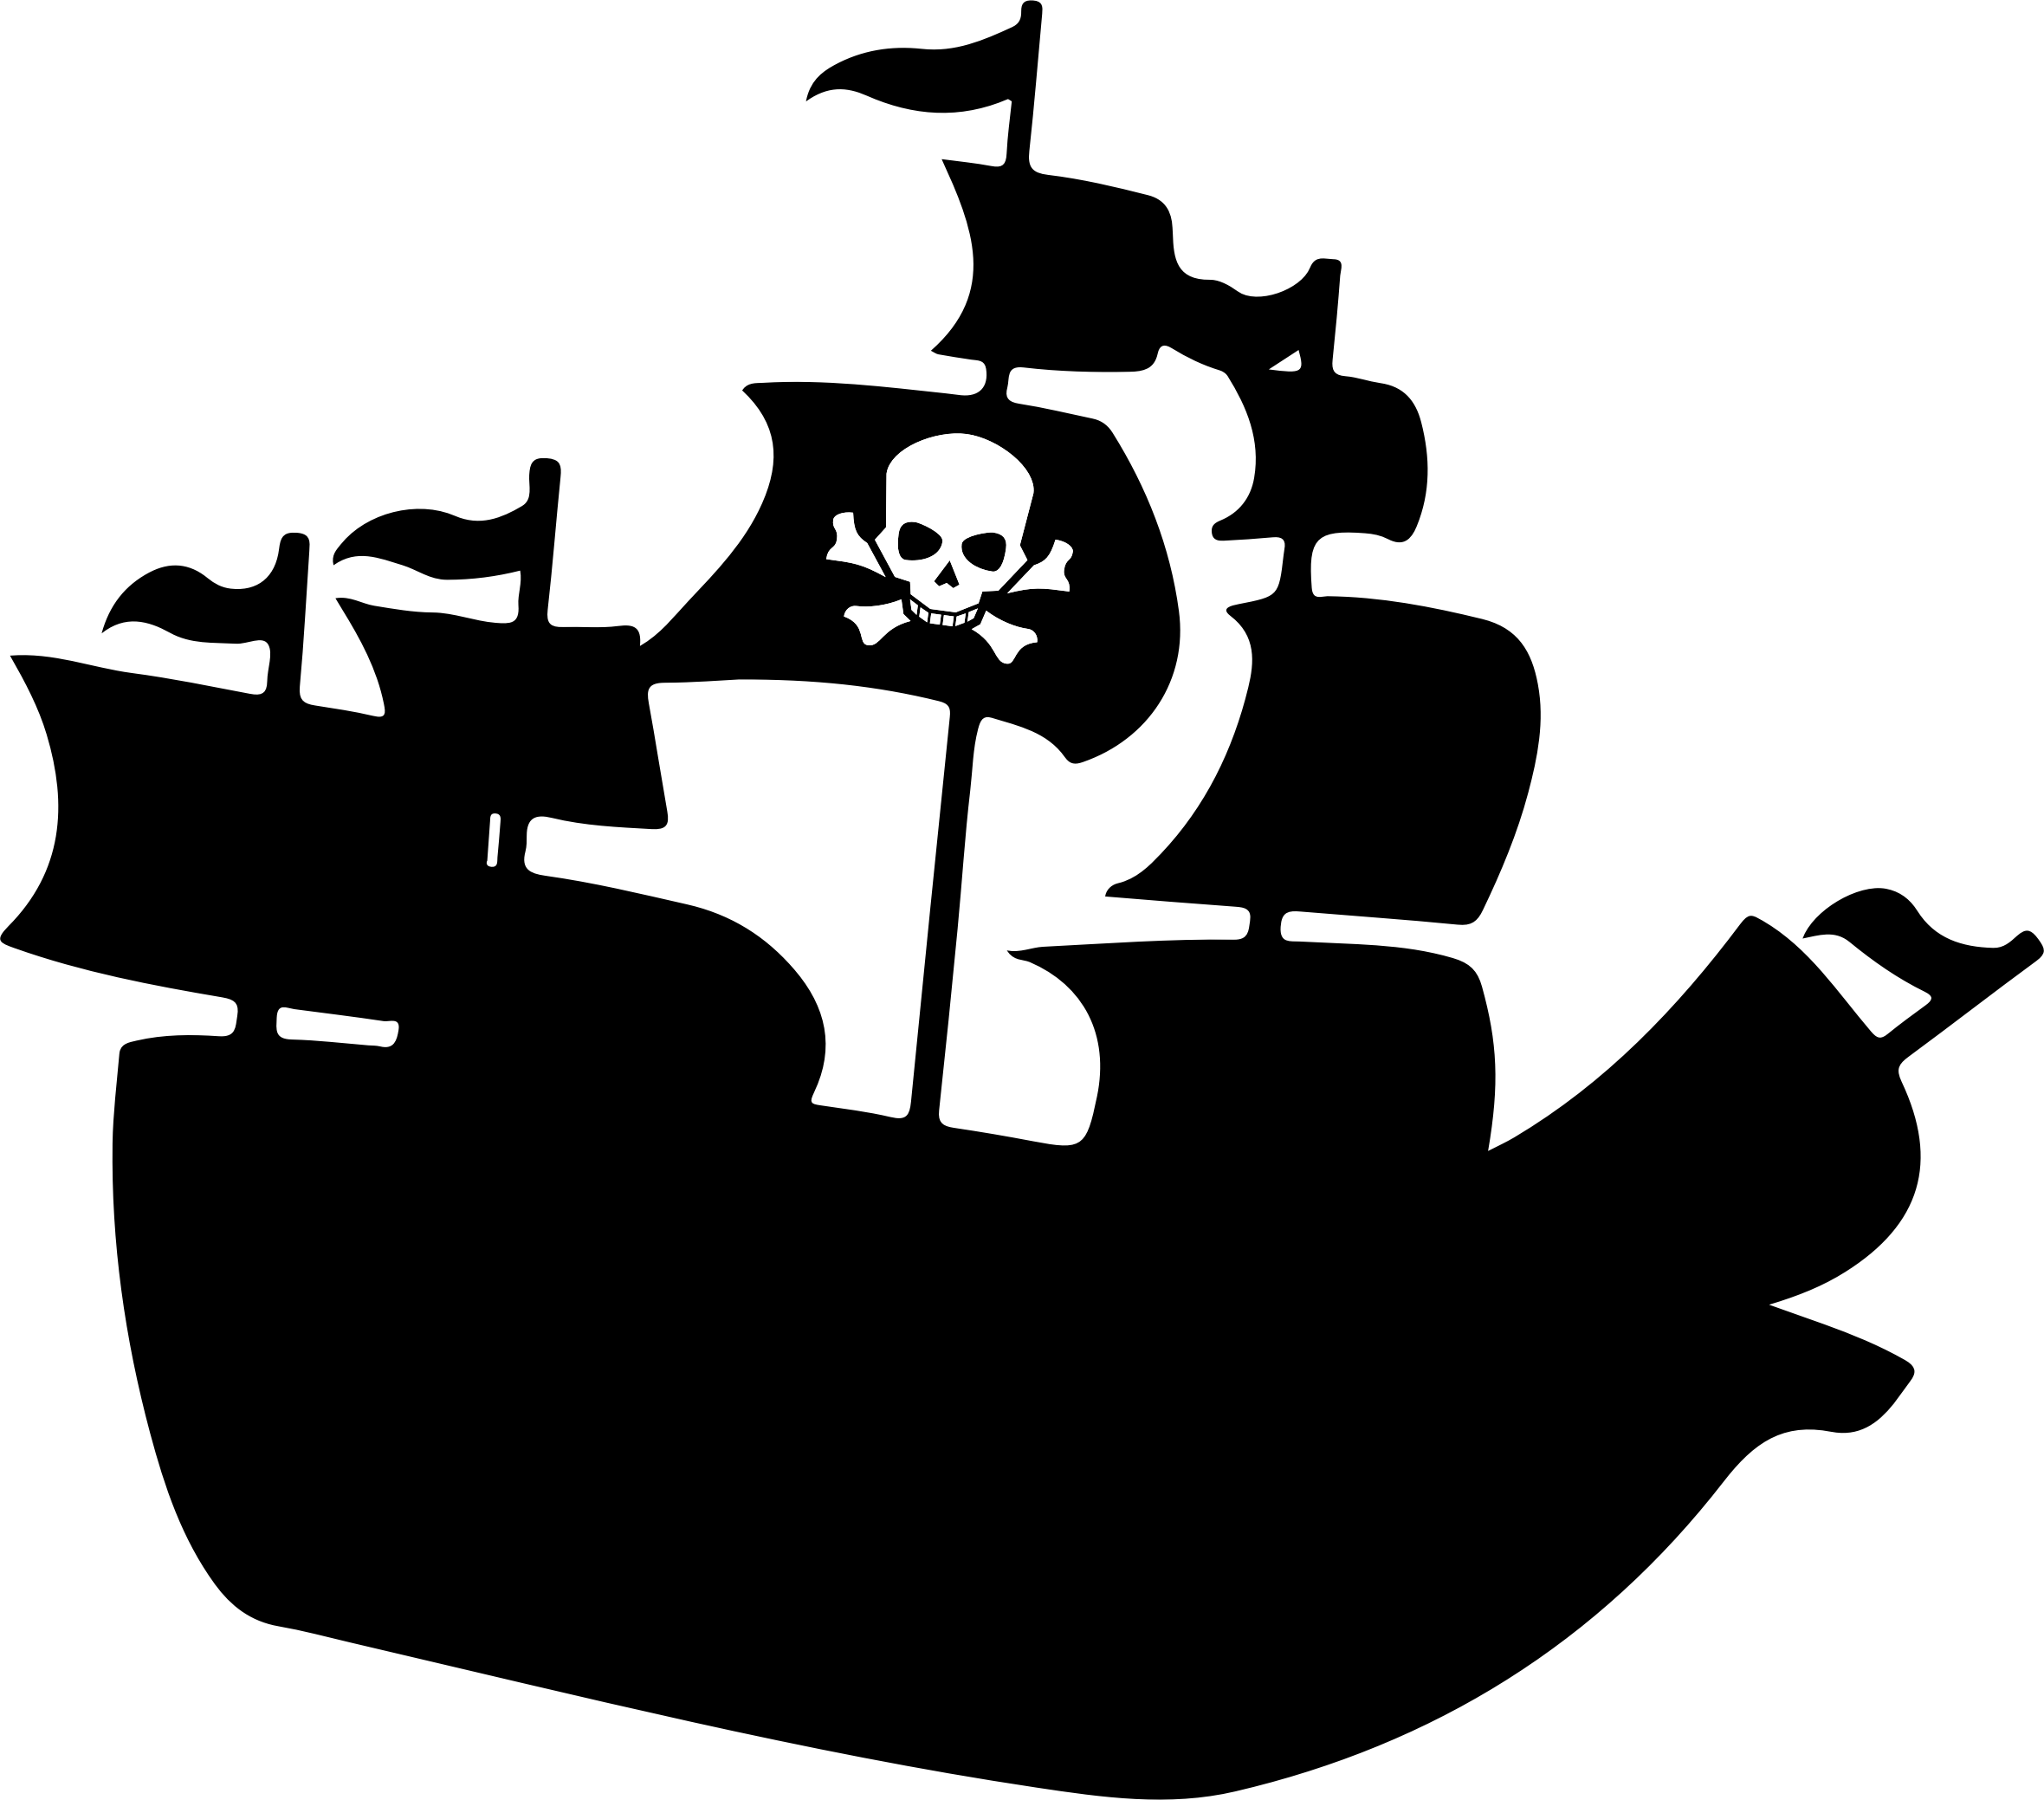 Big clipart pirate ship. Silhouette image png